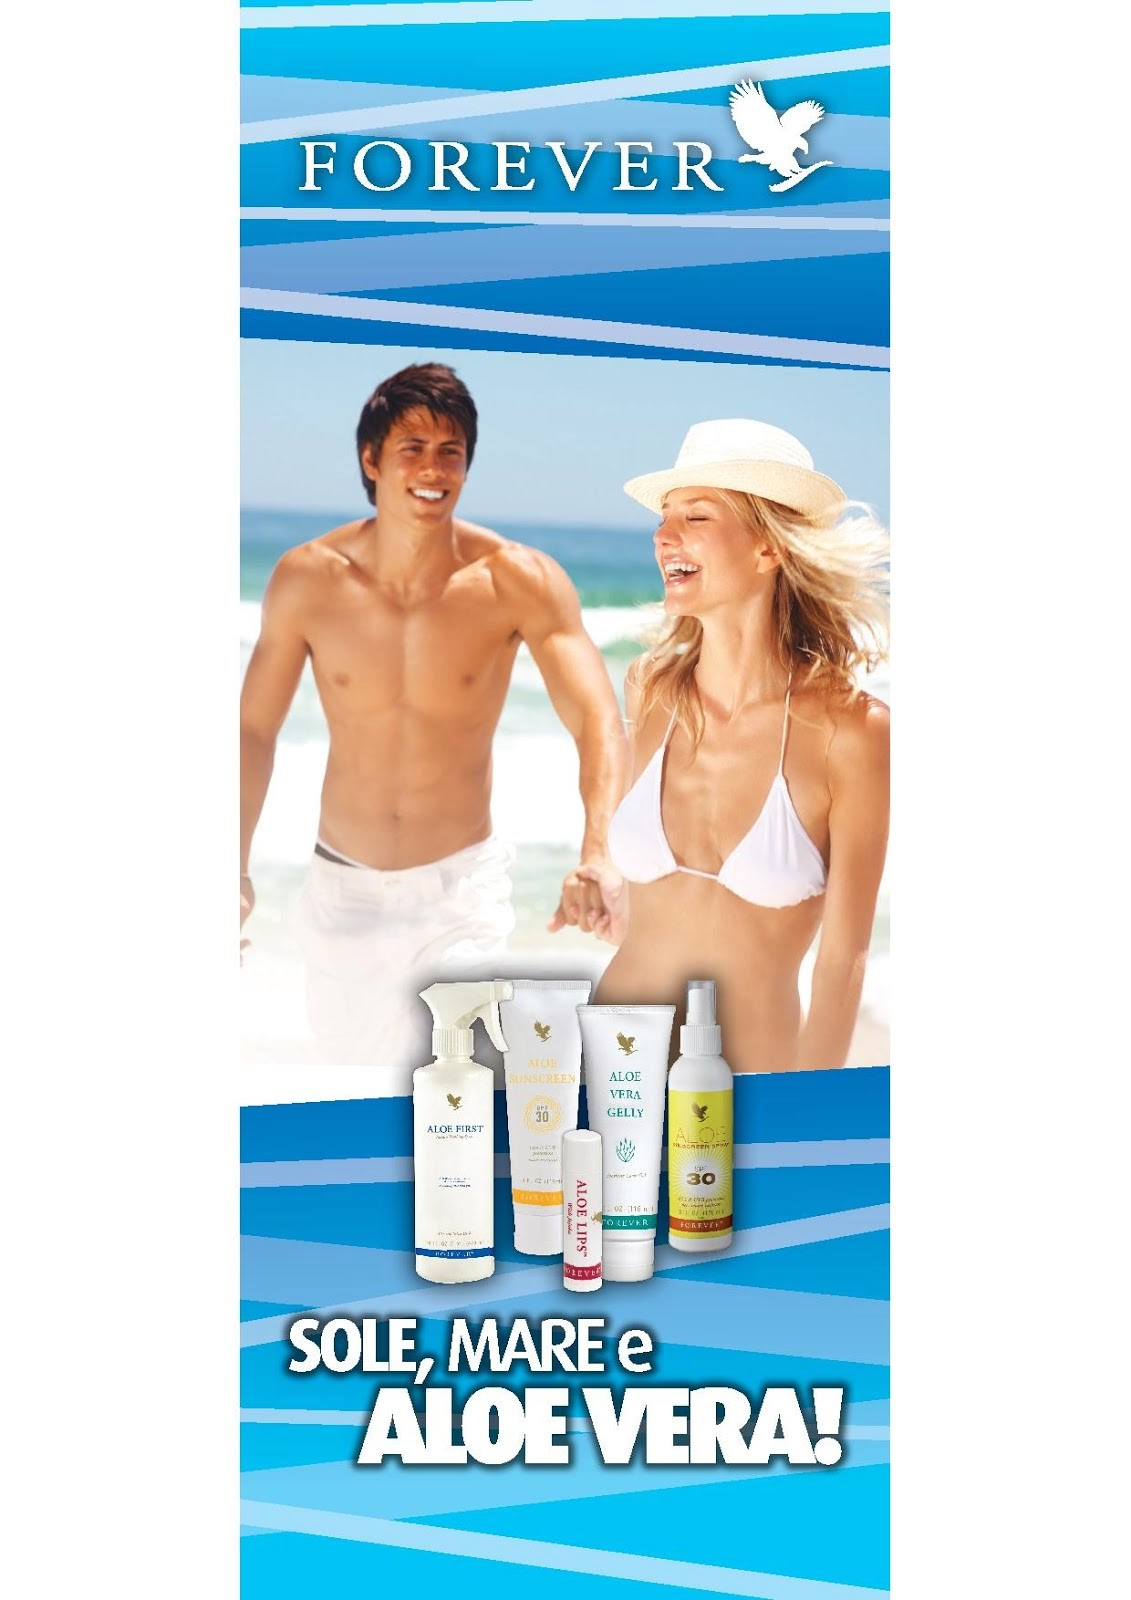 SOLE MARE E ALOE VERA